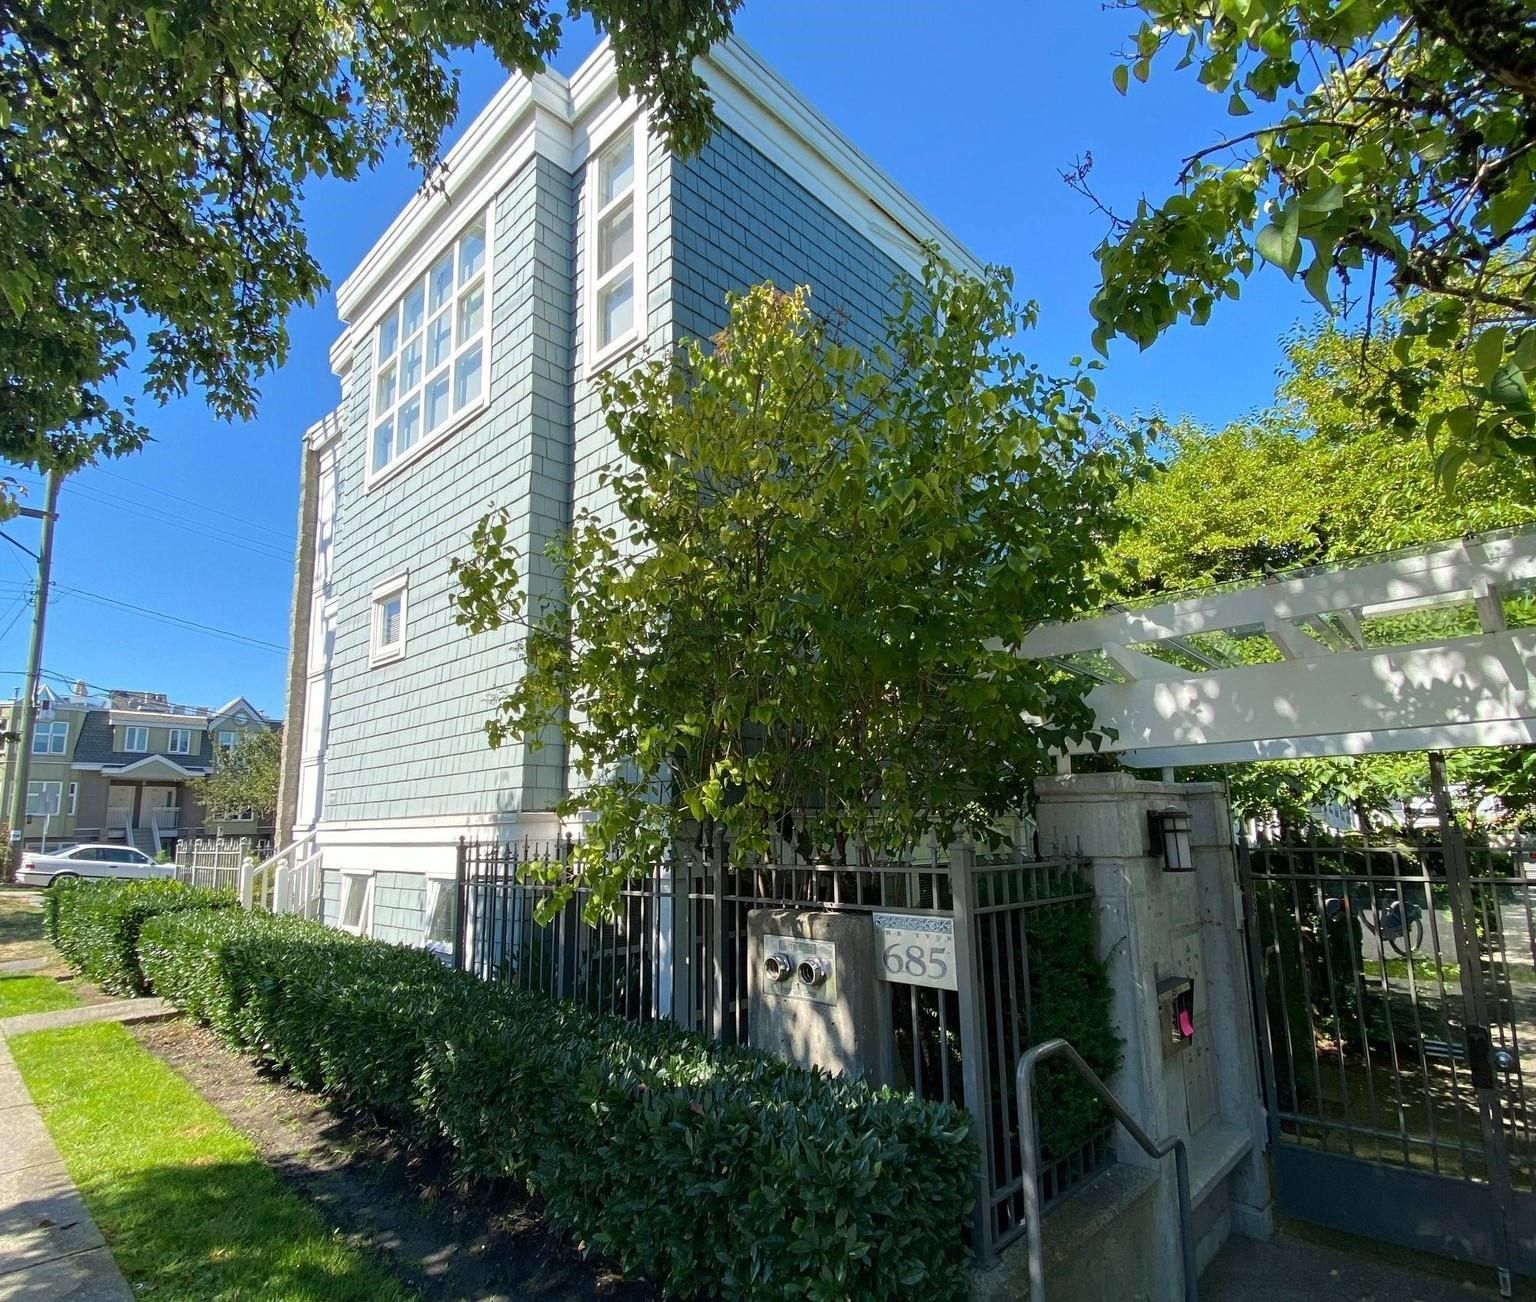 Main Photo: 201 685 W 7TH Avenue in Vancouver: Fairview VW Townhouse for sale (Vancouver West)  : MLS®# R2614227